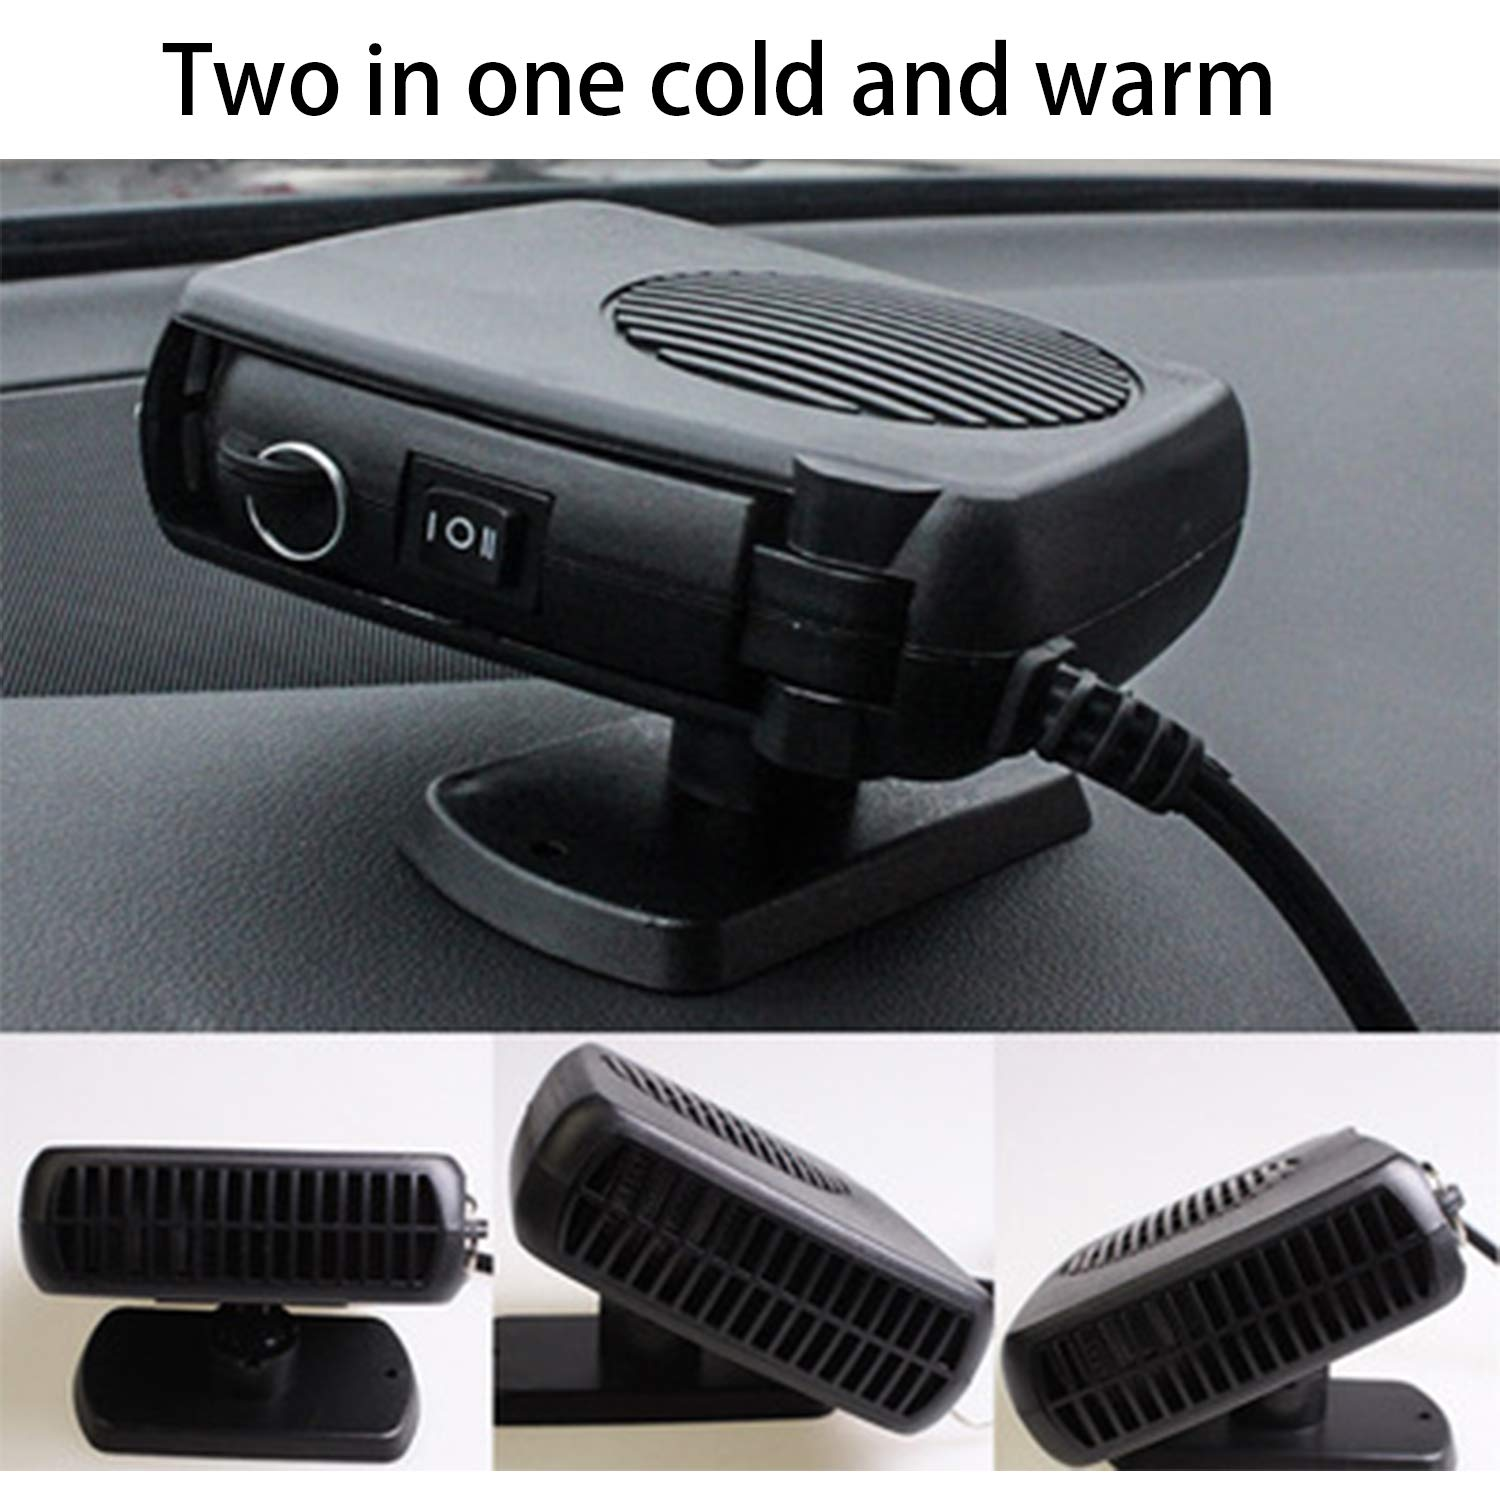 Portable Car Heater Windshield Defroster 12v Car Two-in-one Air Heater Car Heater Black 60w